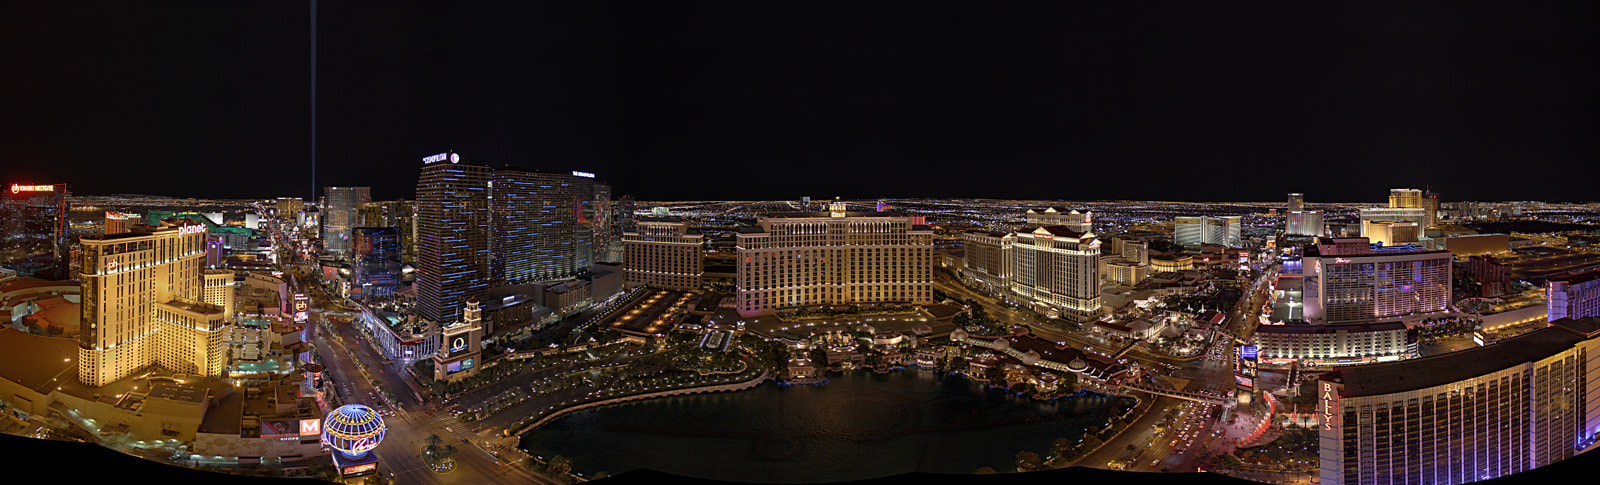 Photograph Vegas Strip by Metro DC Photography on 500px